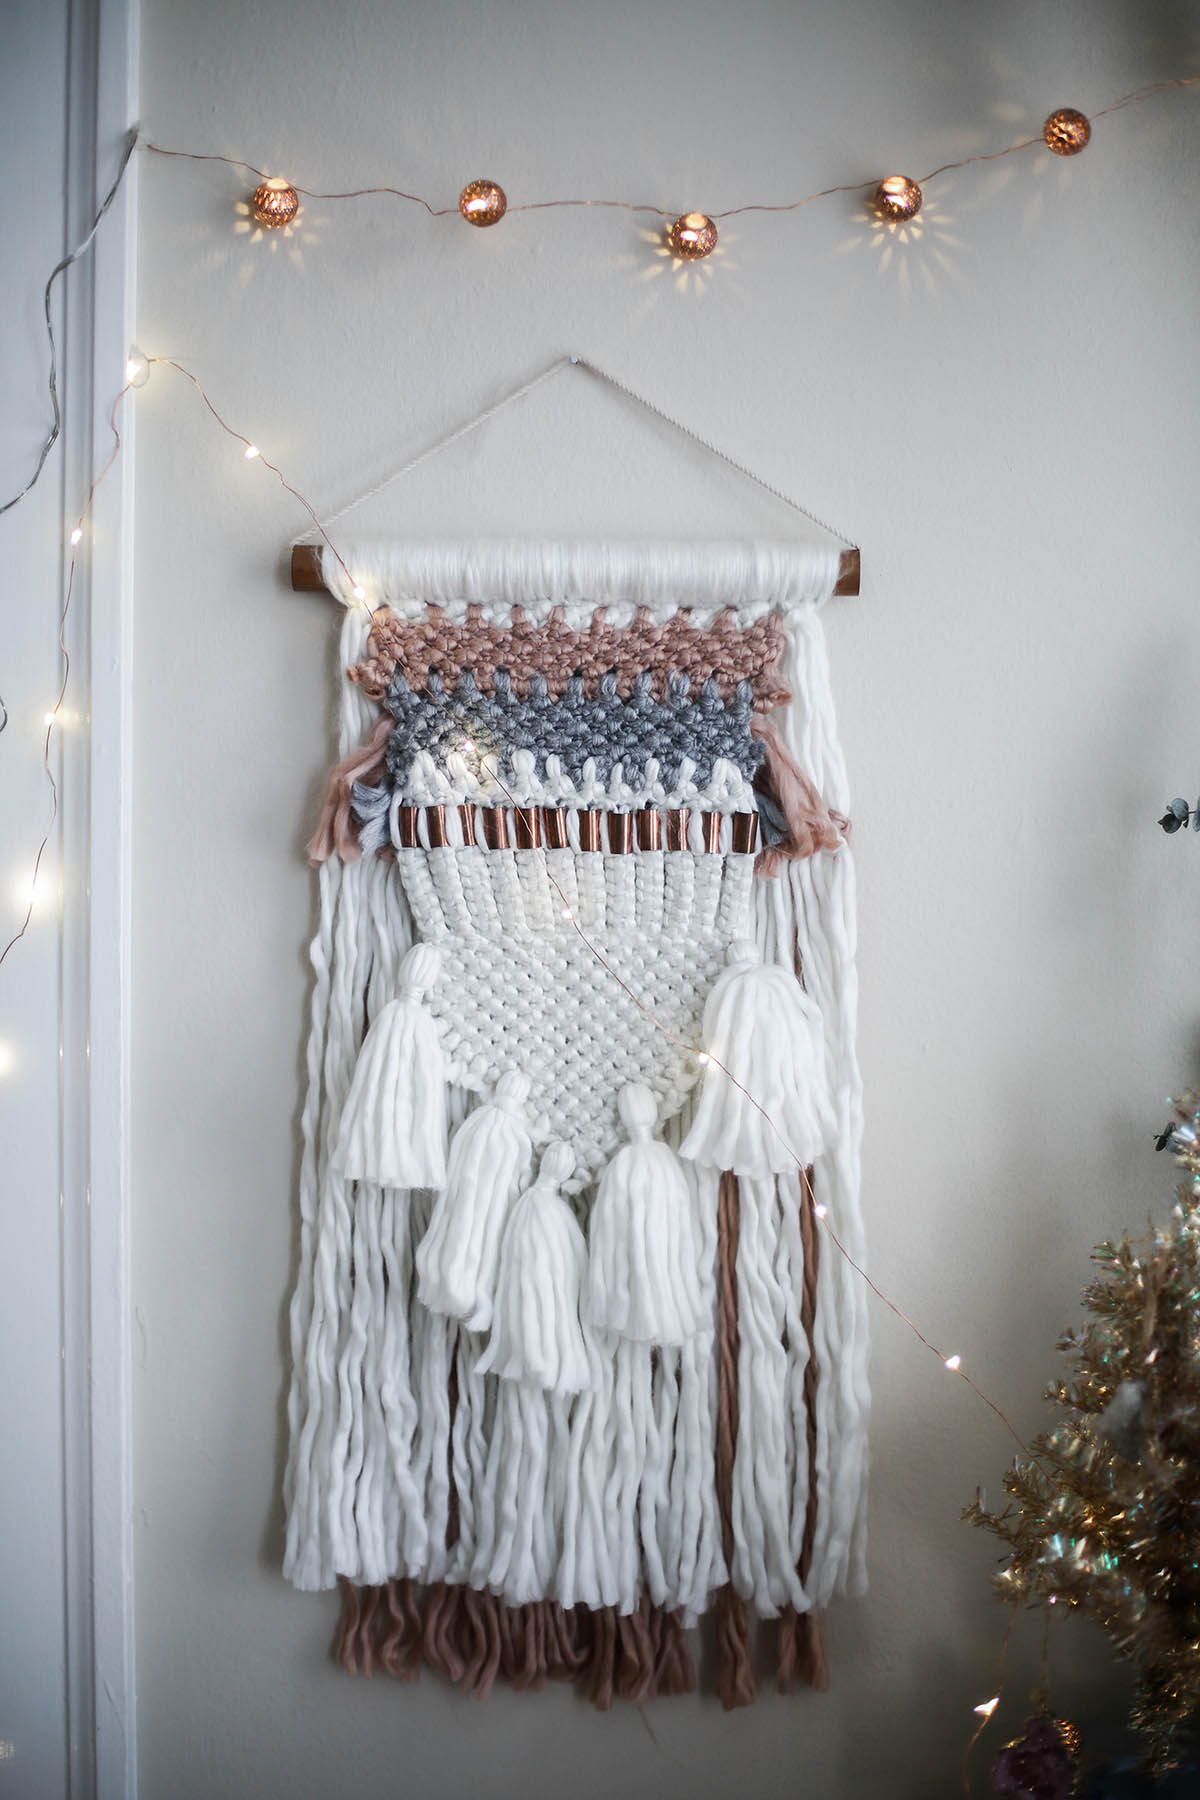 a-cozy-home-for-the-chilly-winter-season-liebe-was-ist-interoir-diy-lifestyle-inspiration-weihnachtlich-winterliche-deko-ideen-1